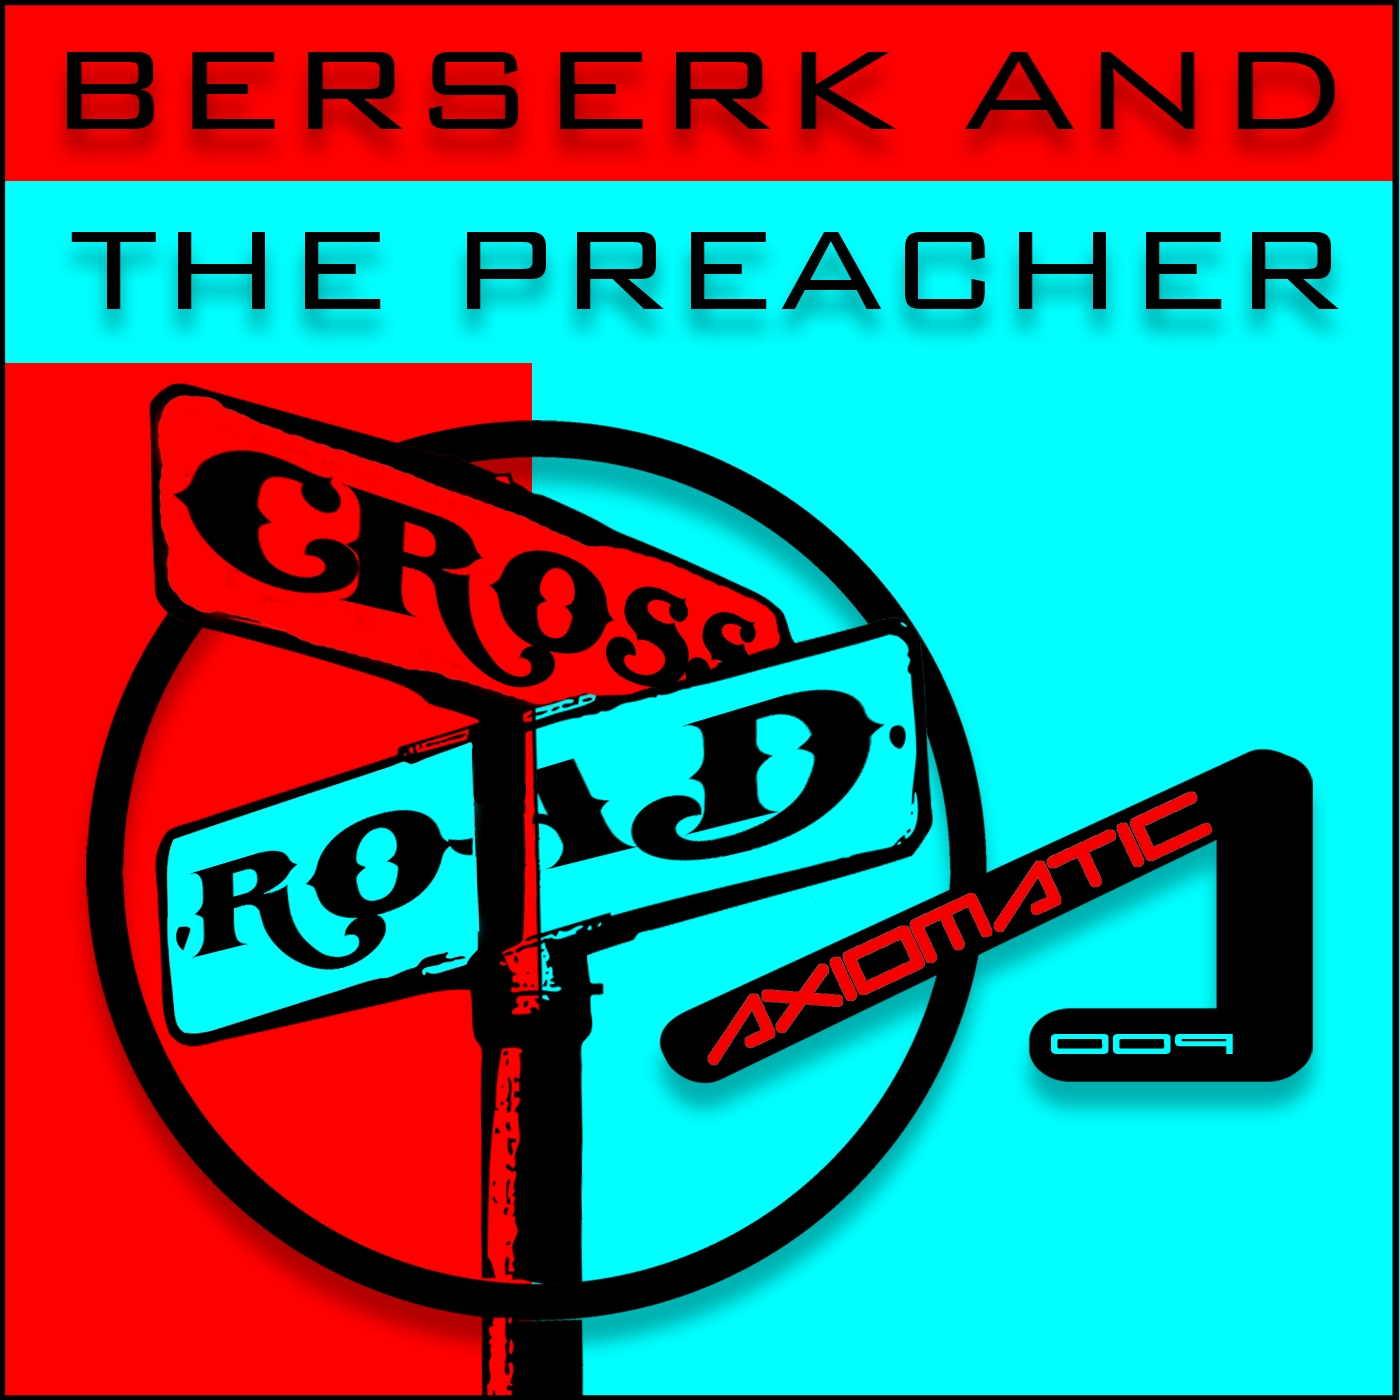 Berserk & The Preacher - Faith Duster (Original mix)